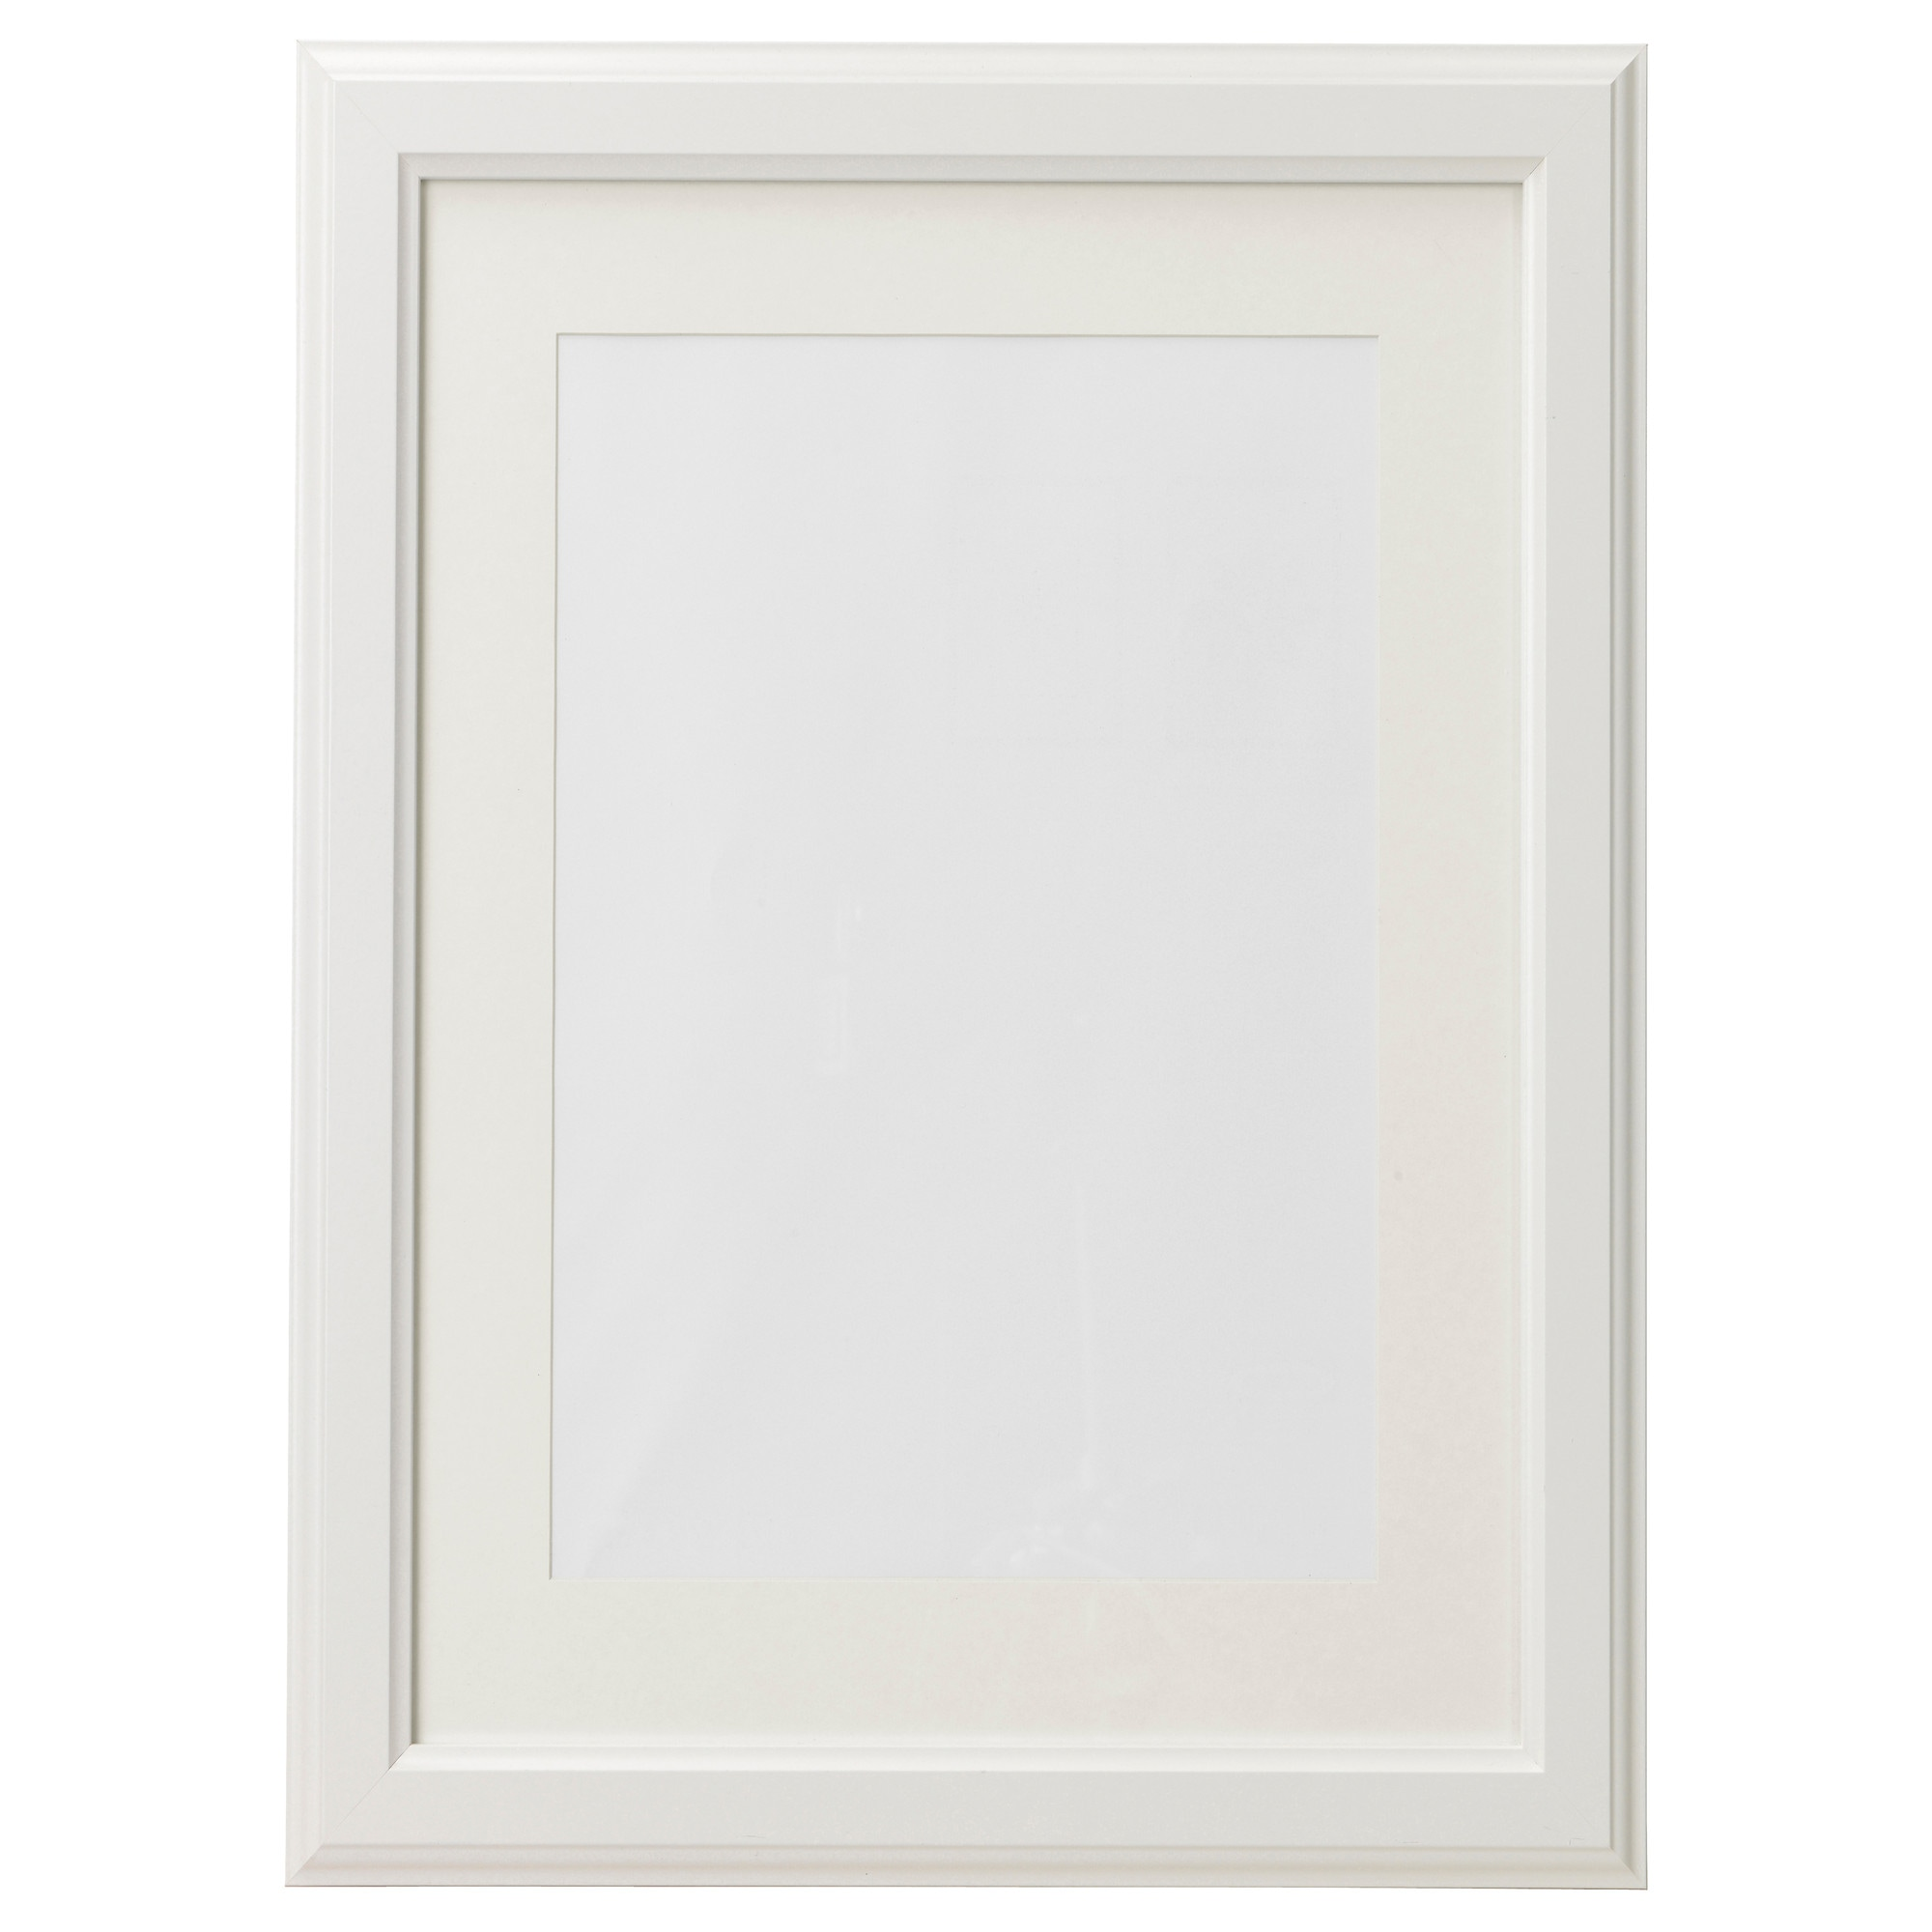 White picture frames images pictures becuo - White wall picture frames ...